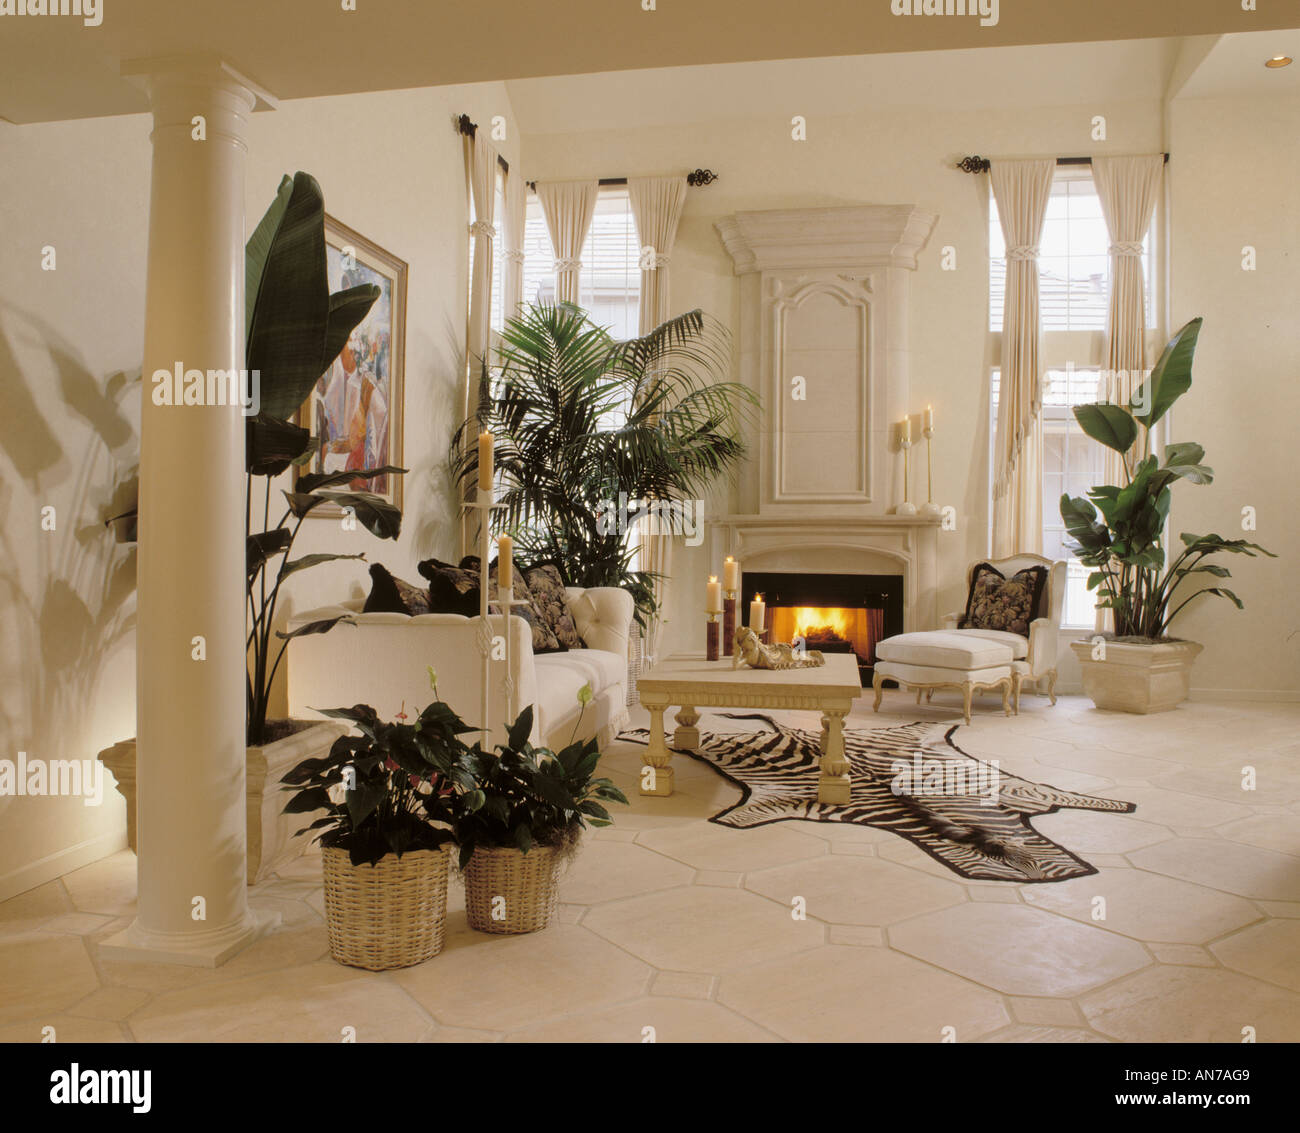 Living Room In White With Gothic Fireplace Tall Plants White Couch